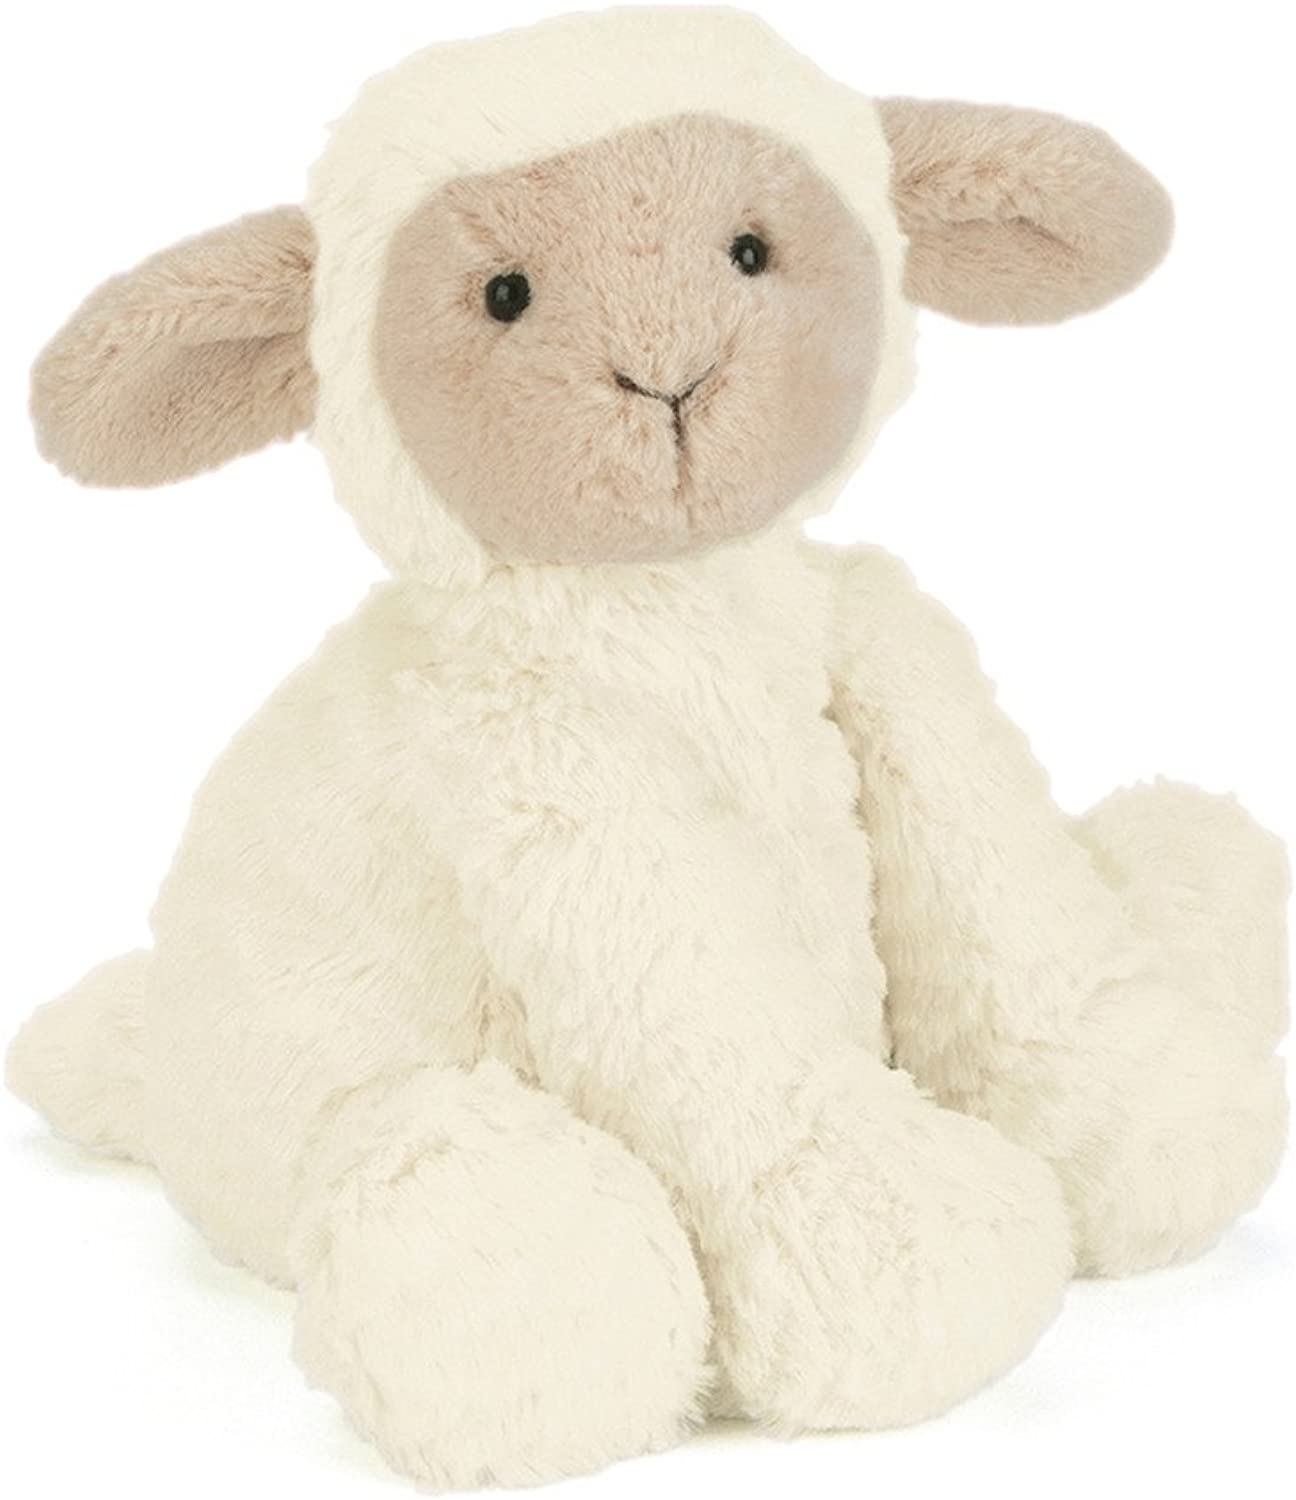 Jellycat Jellycat Fuddle Wuddle Lamb Stuffed Animal 9  23cm